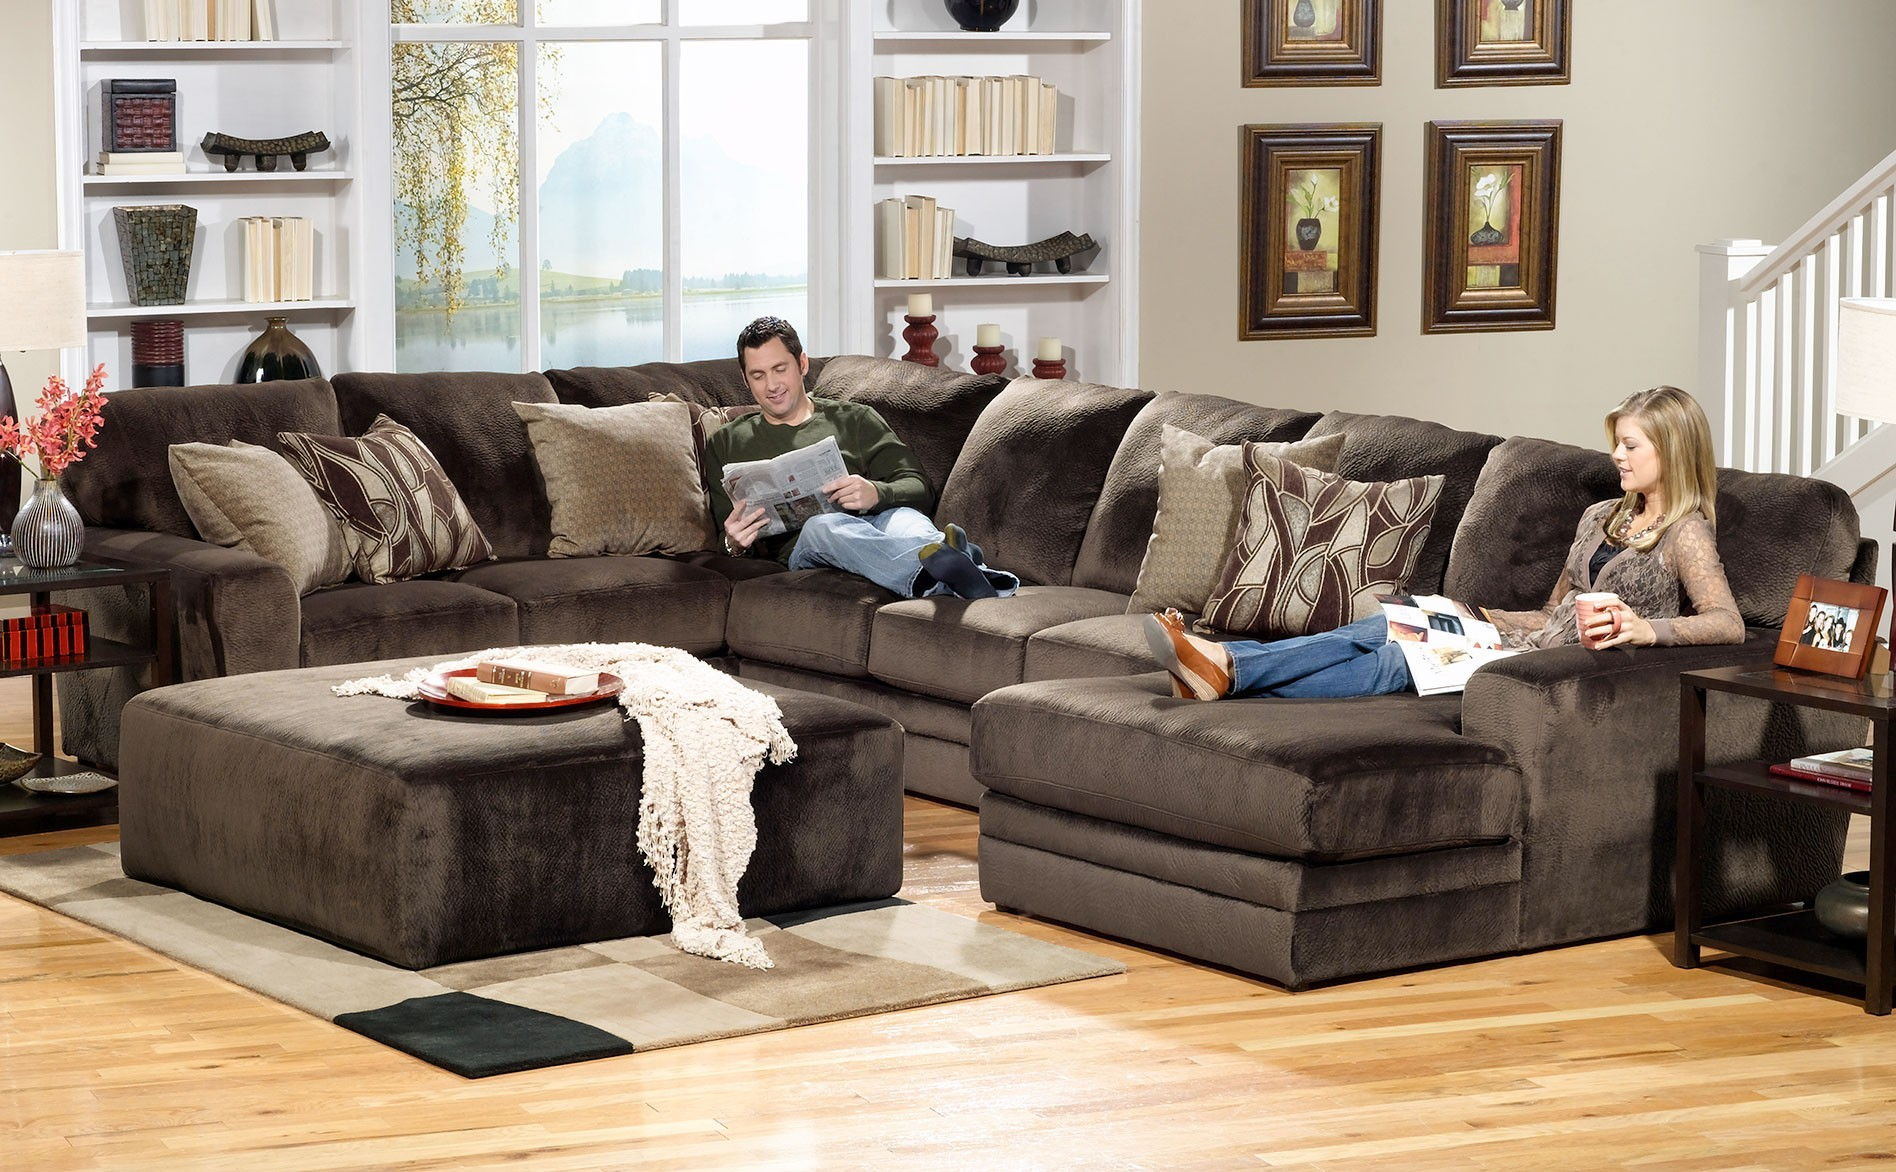 Elegant 9 Piece Sectional Sofa Picture